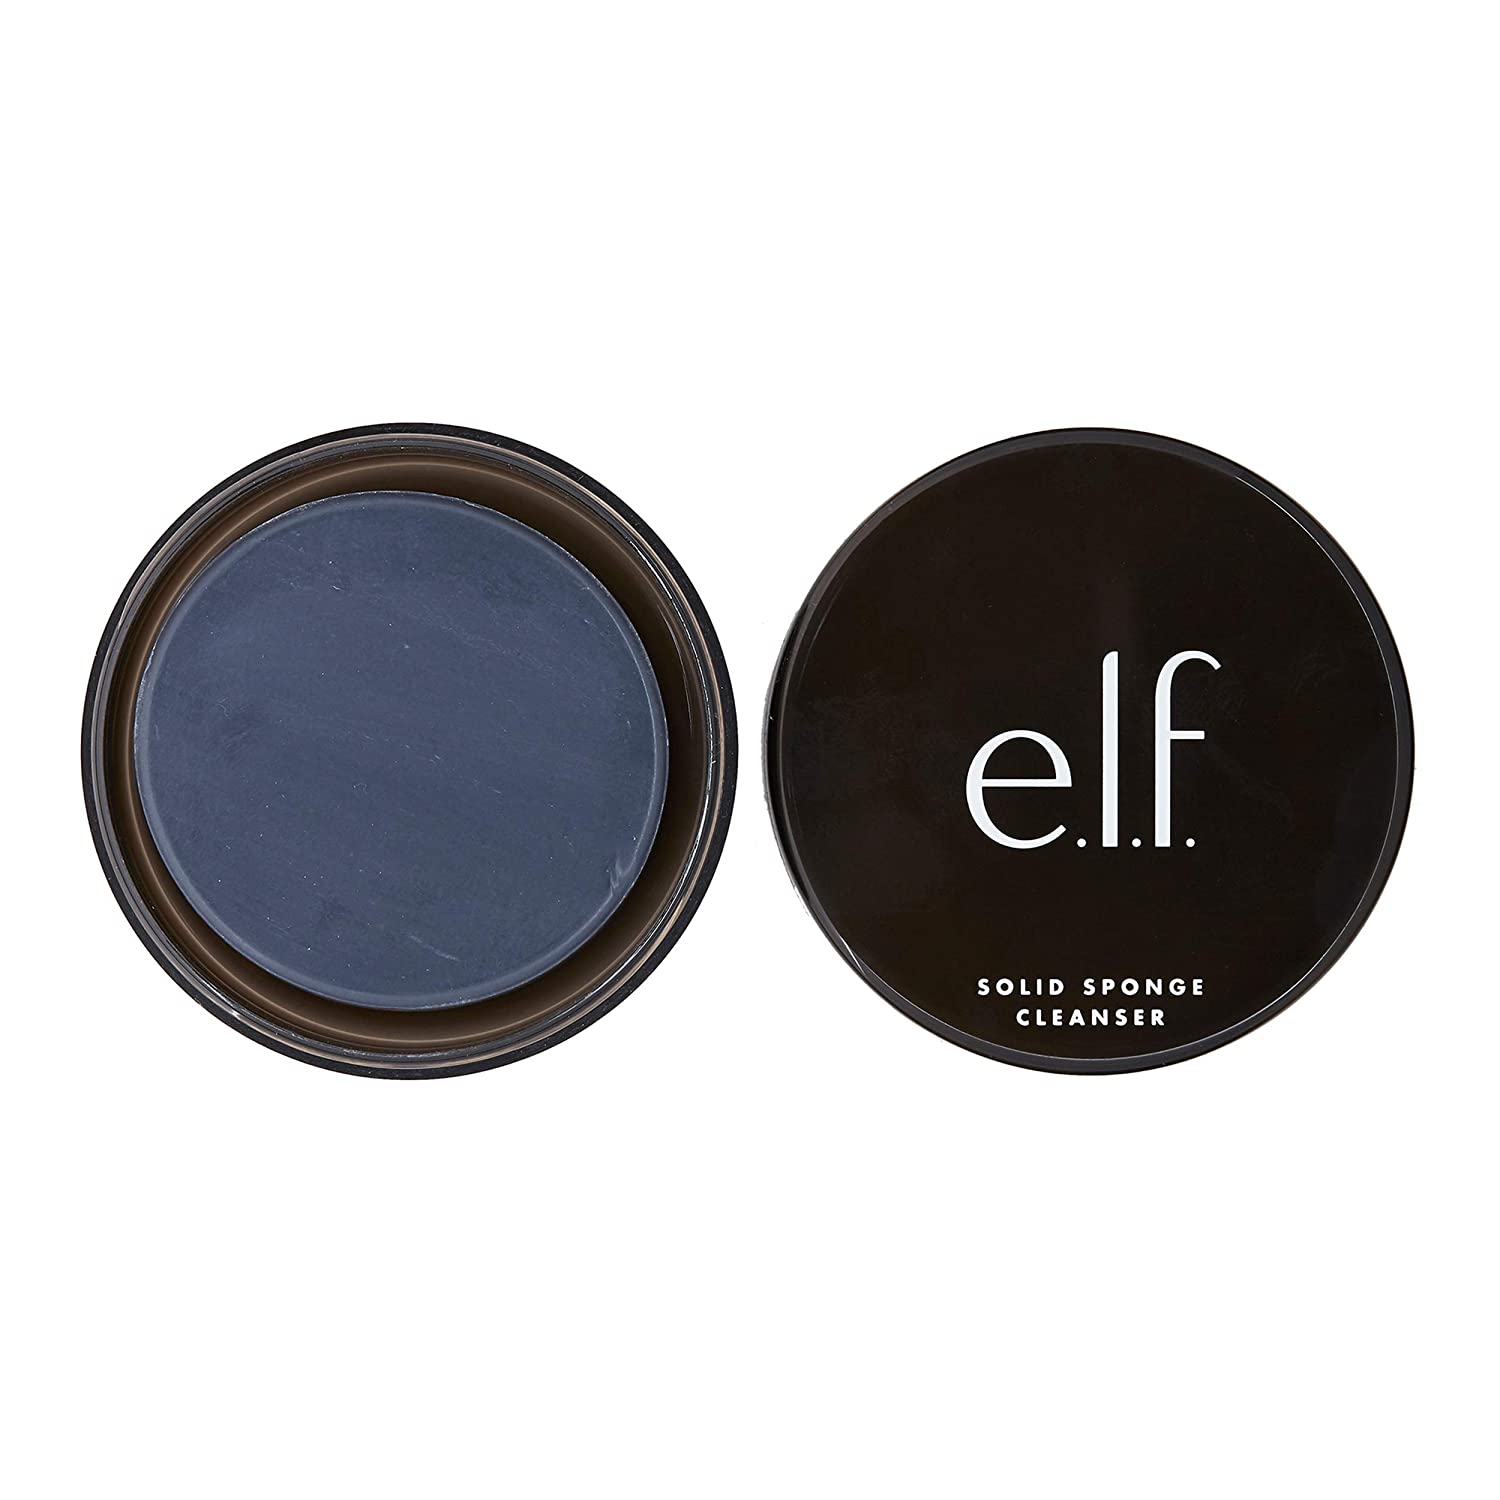 e.l.f. Solid Brush and Sponge Cleanser with Travel Case, 1.56 oz.